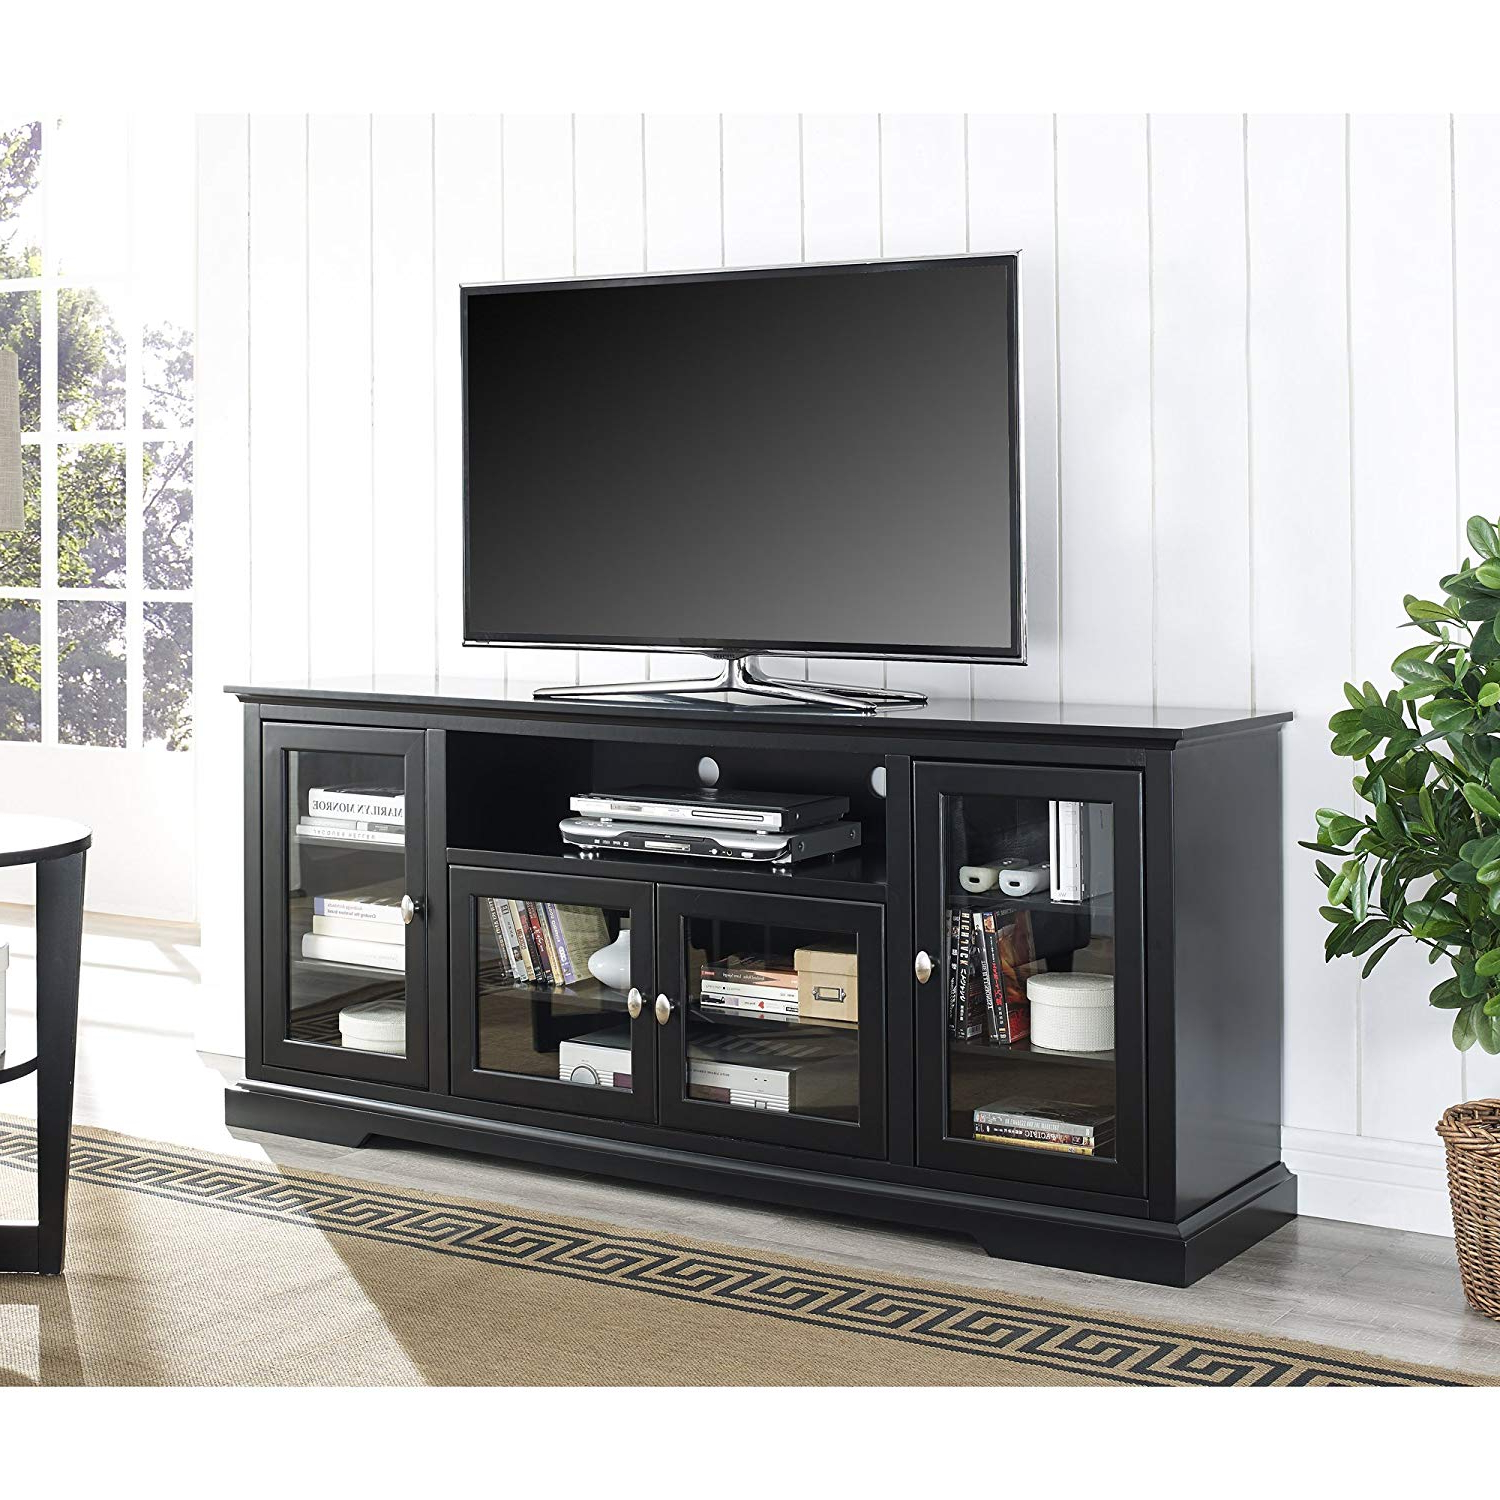 "Highboy Tv Stands Regarding Trendy Amazon: We Furniture 70"" Highboy Style Wood Tv Stand Console (View 11 of 20)"